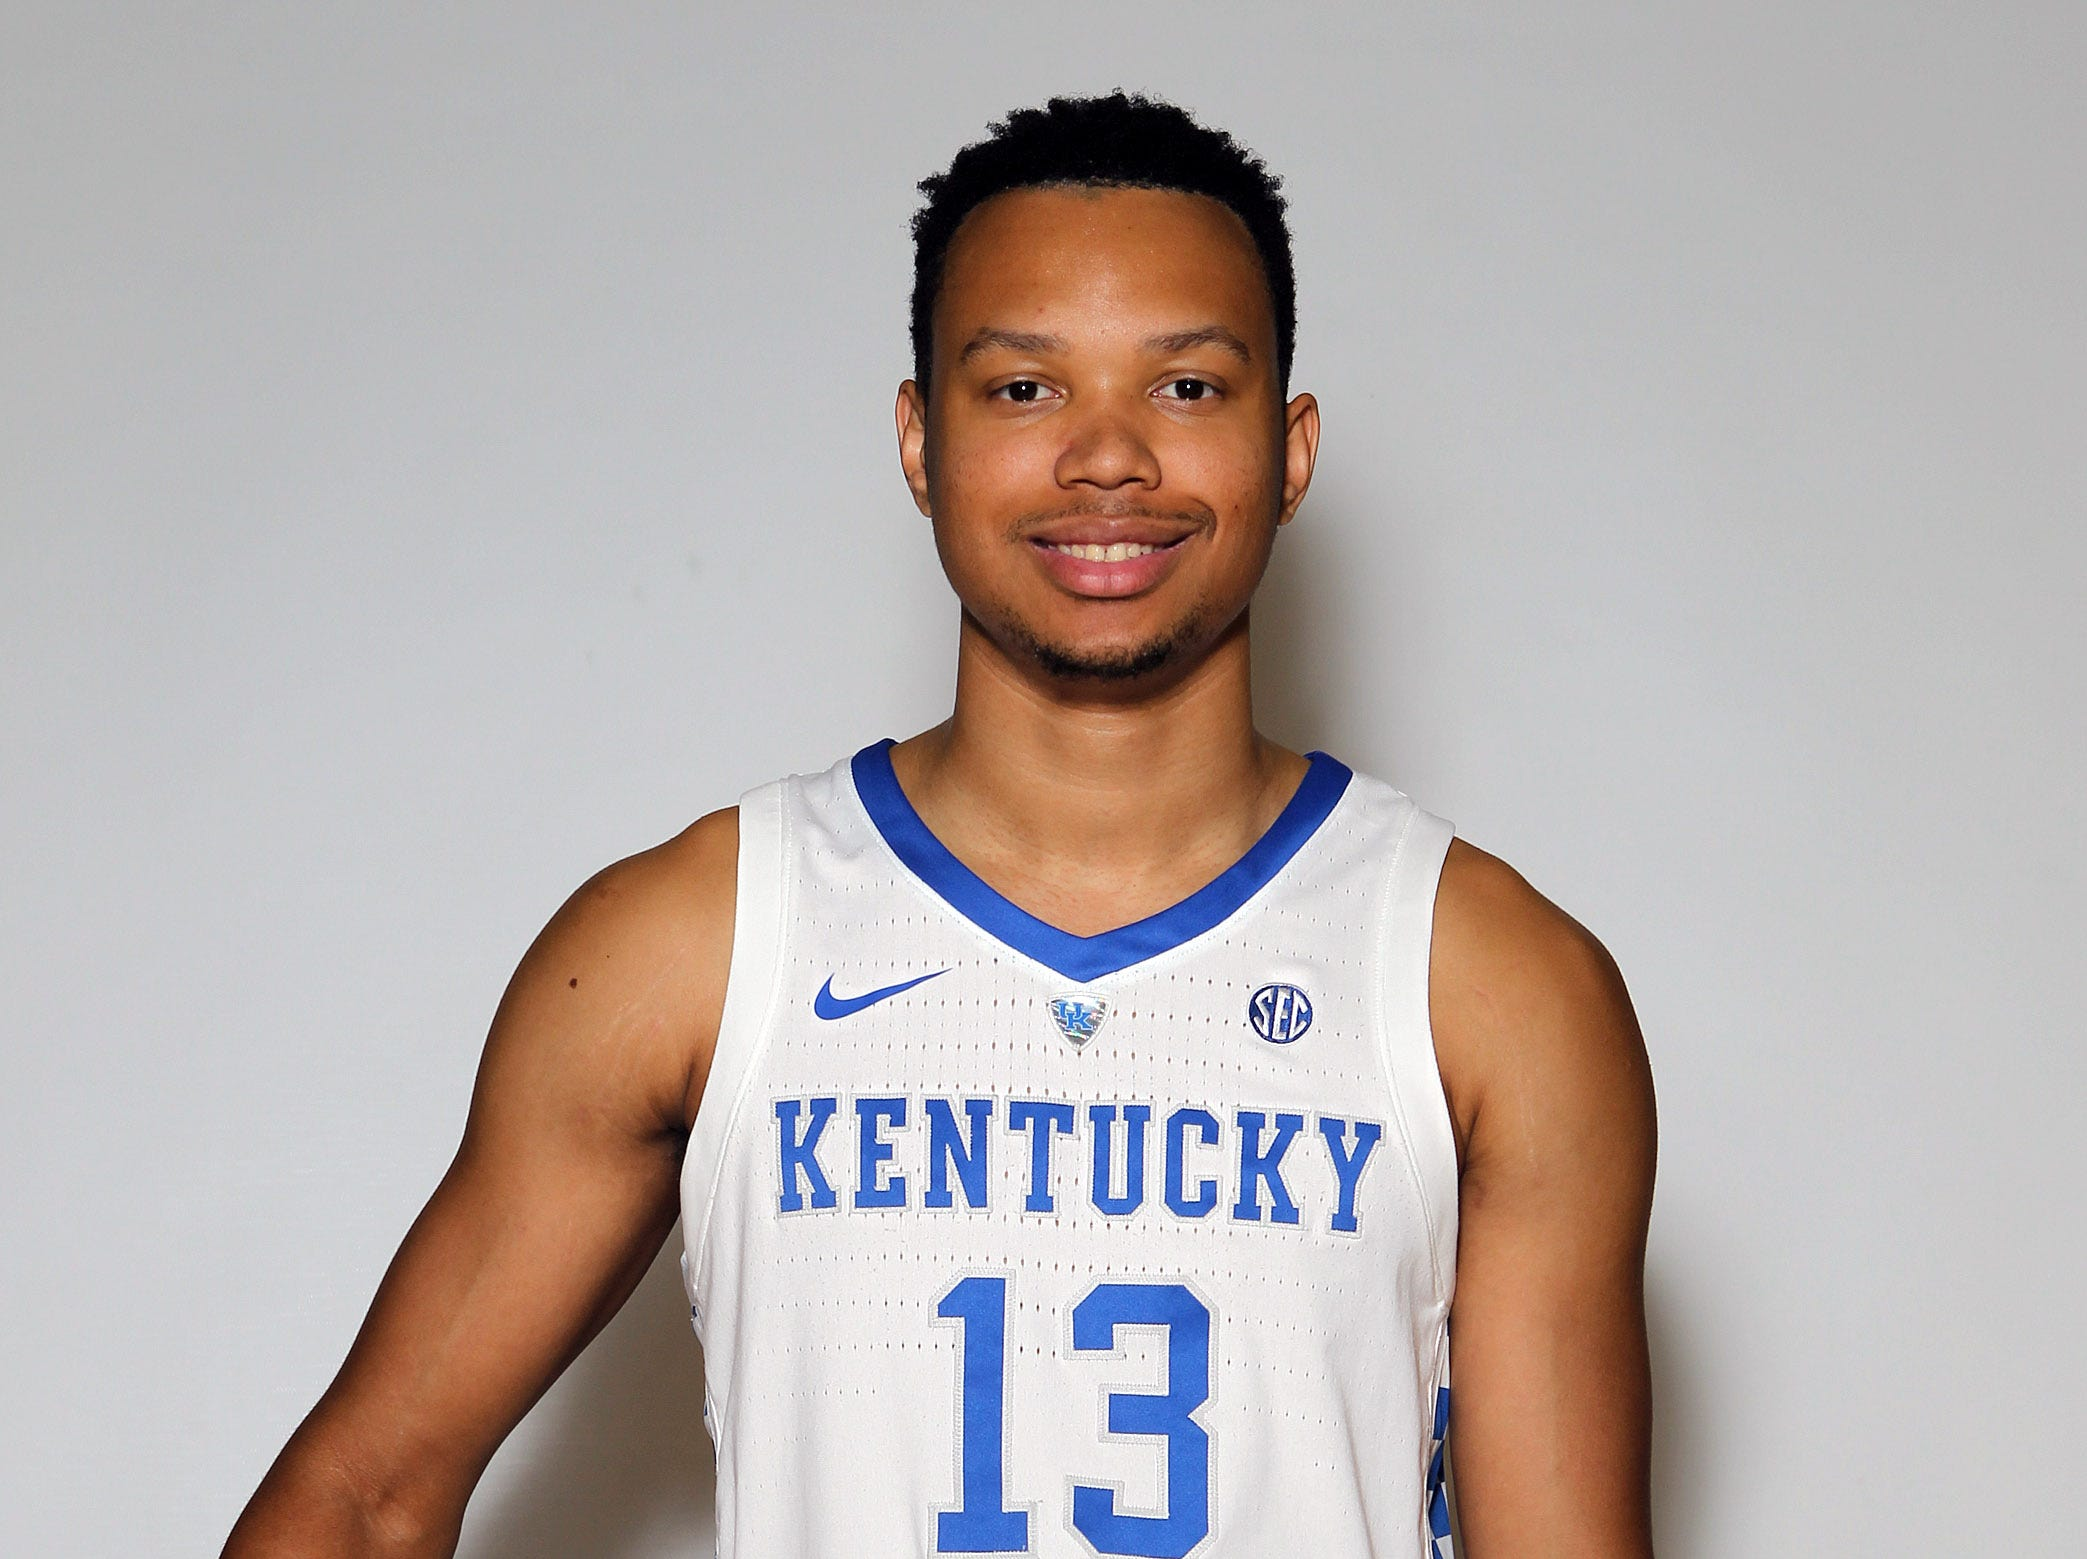 Kentucky's Jemarl Baker poses during the teams picture day in Memorial Coliseum on campus. Sep. 20, 2018